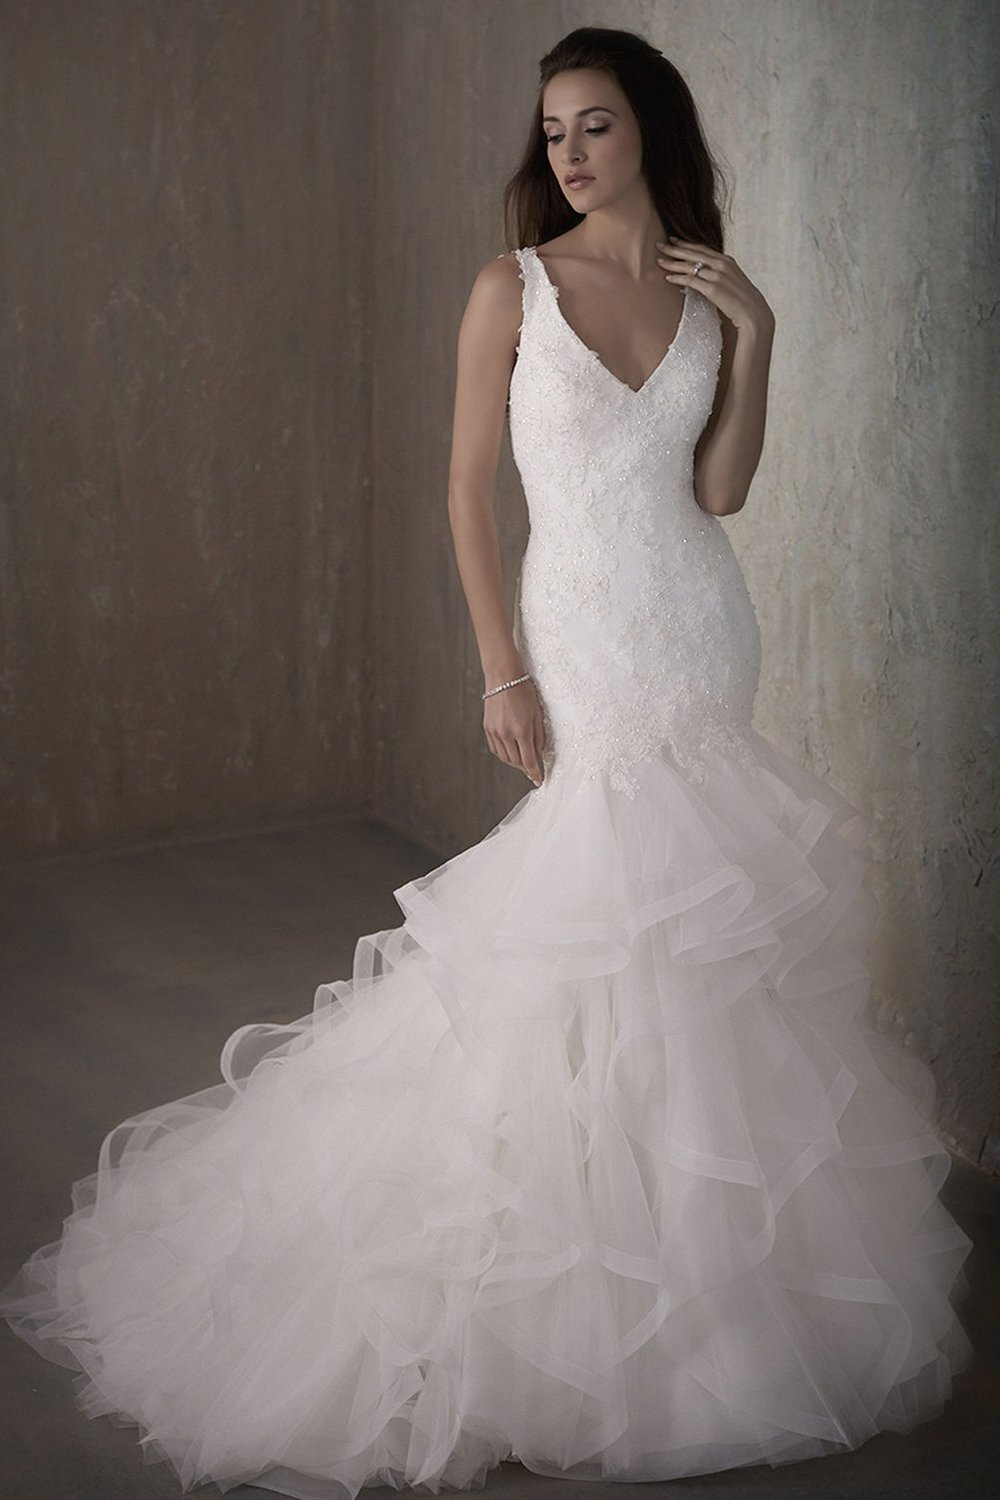 Adrianna Papell 31015 Ivory // Retail Price $1073 | Our Price $825